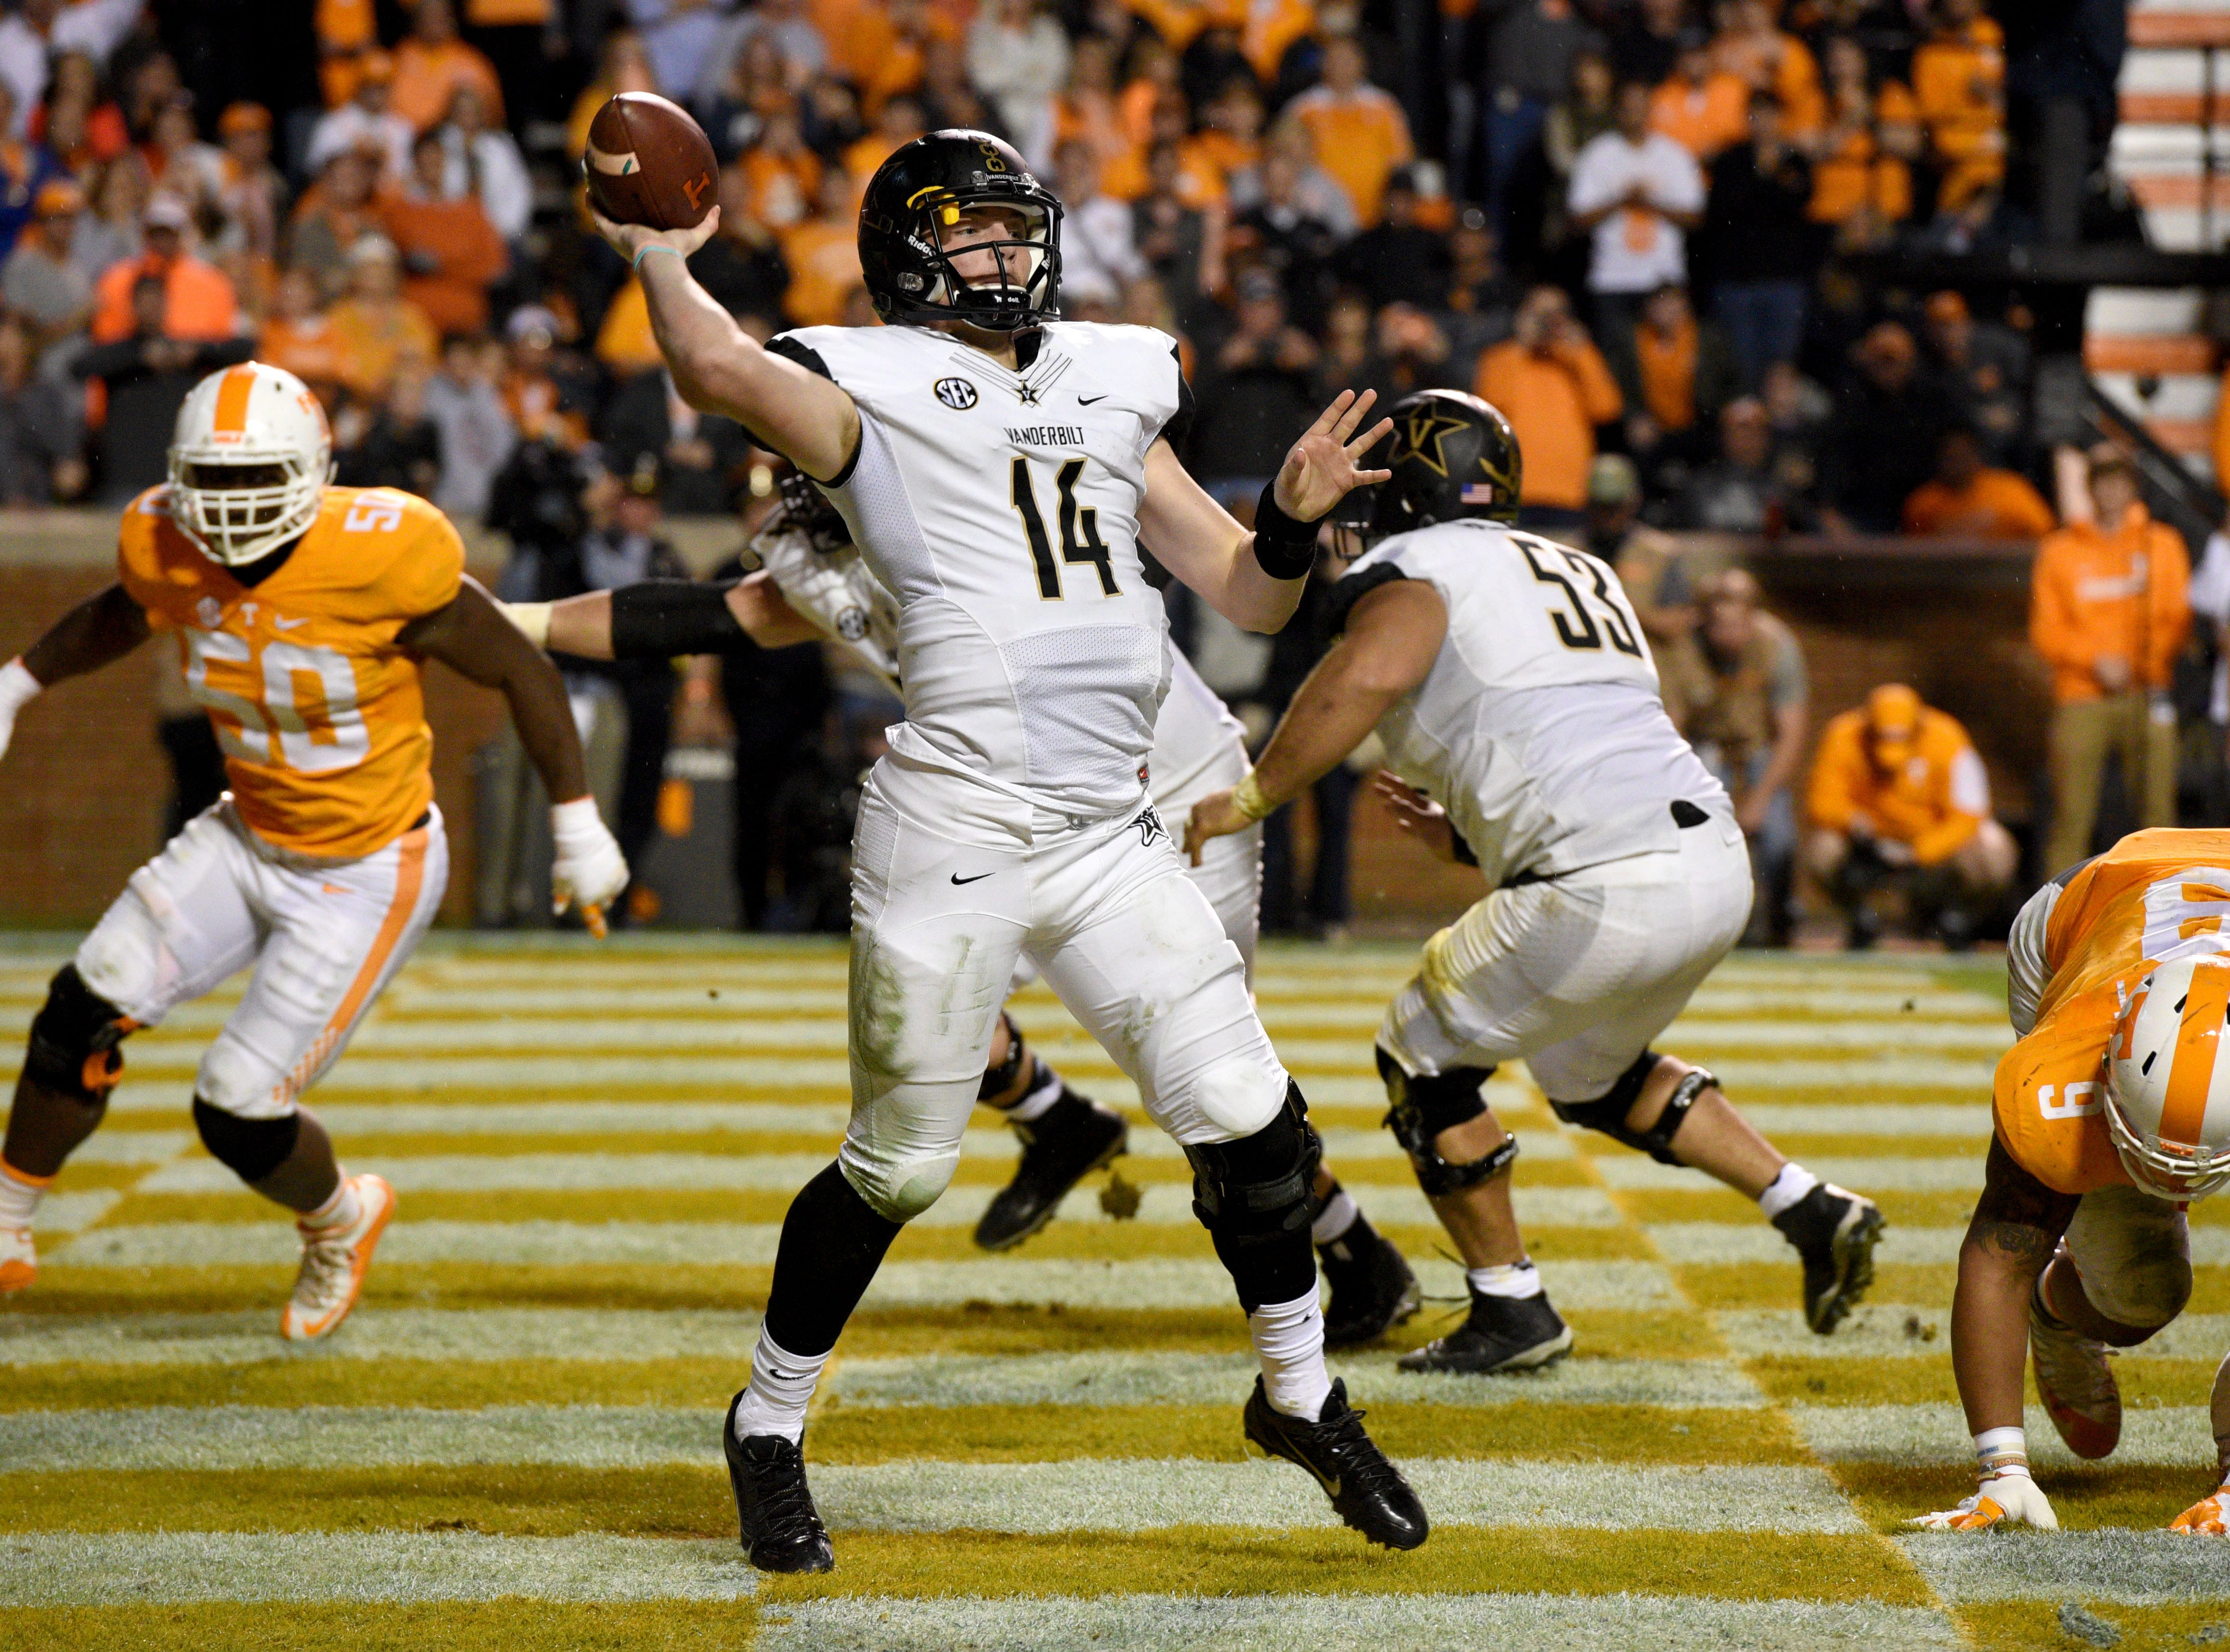 Vanderbilt quarterback Kyle Shurmur (14) passes the ball against Tennessee during the second half at Neyland Stadium in Knoxville, Tenn. on Saturday, Nov. 28, 2015.